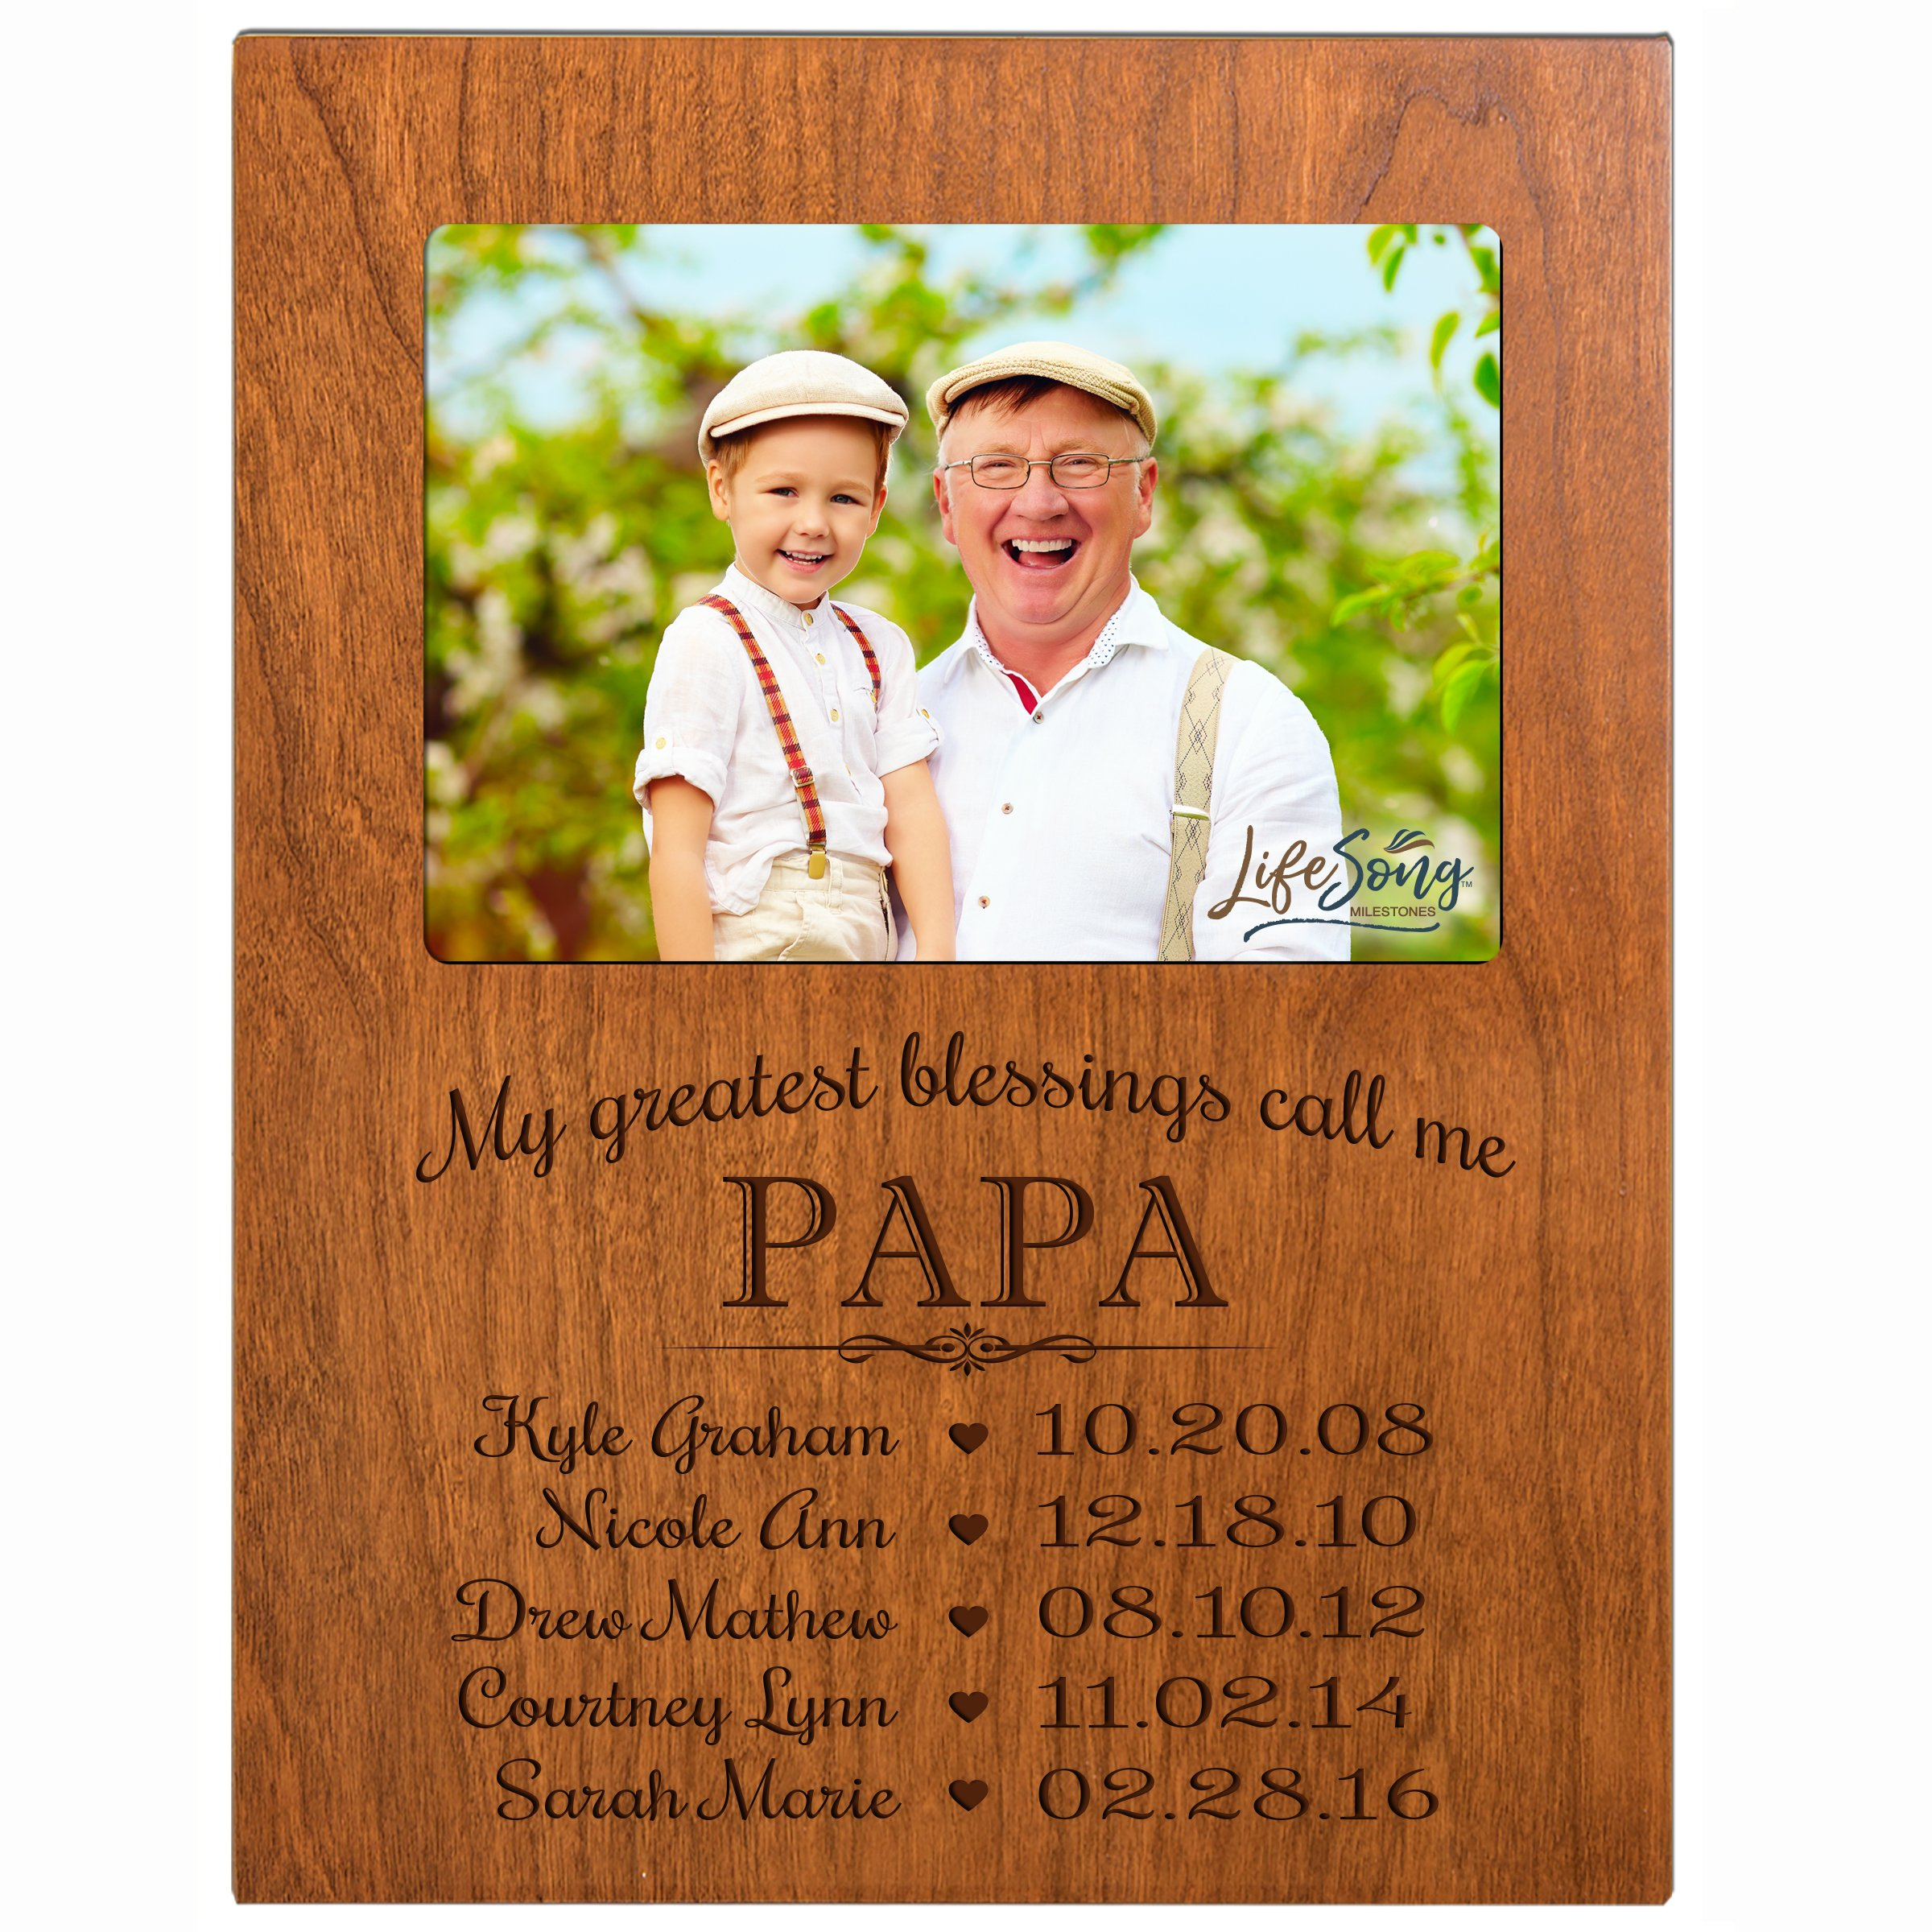 LifeSong Milestones Personalized Gift for Papa Picture Frame with Children's Names and Kid's Birth Date Special Dates My Greatest Blessings Call me Papa Holds 4x6 Photo (Cherry) by LifeSong Milestones (Image #2)